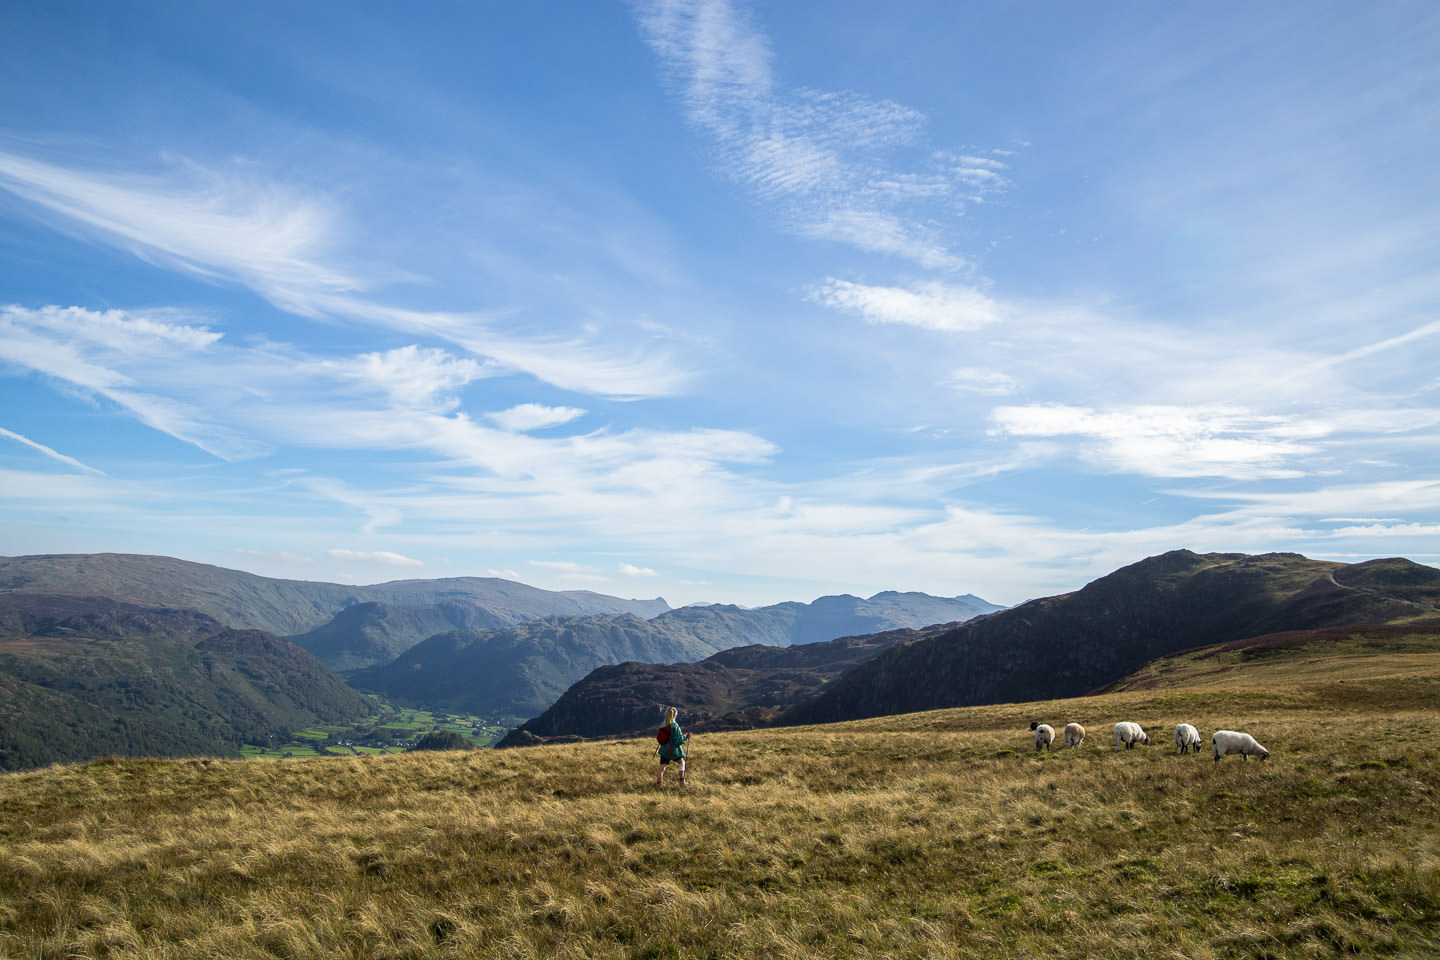 Hollie, backdropped by other Wainwrights, passes some sheep